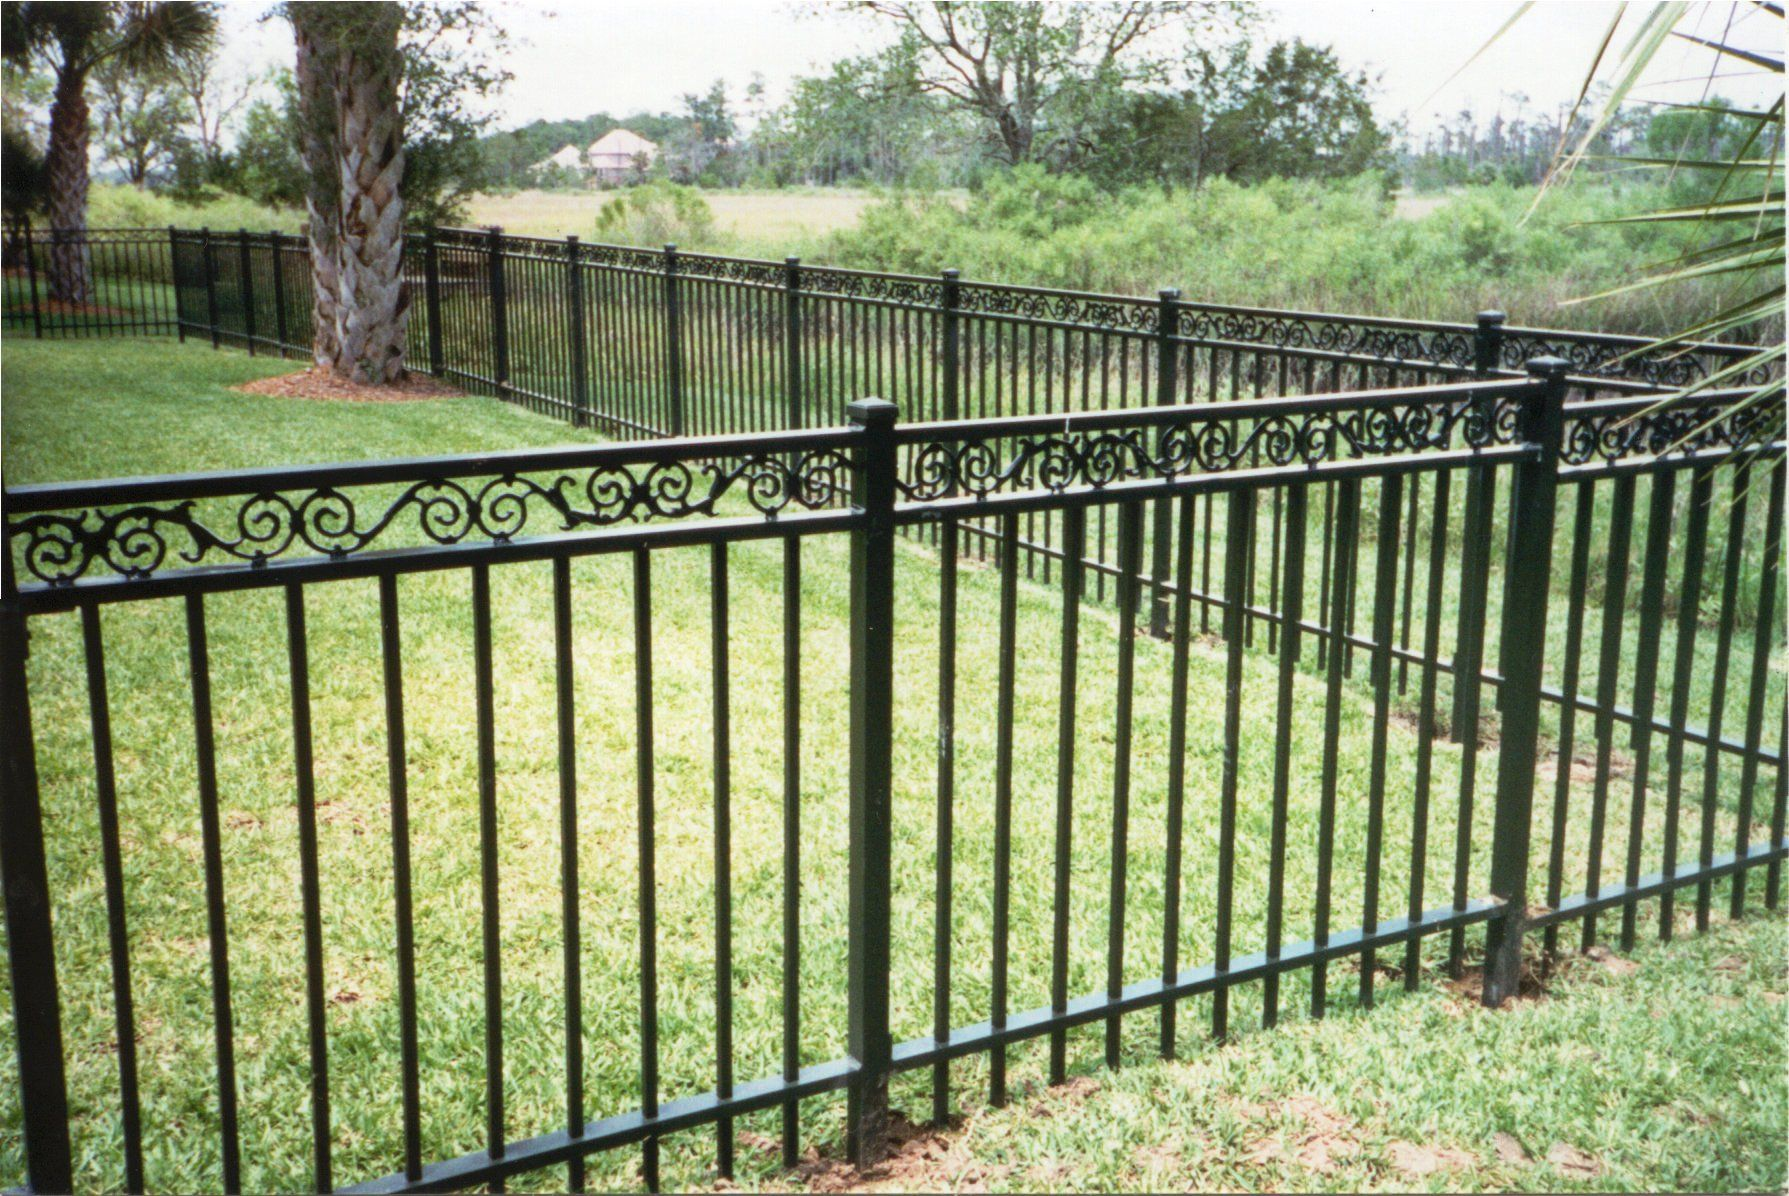 ornate wrought iron gate custom metal garden we sell and install ornamental wrought iron sun king fencing gates fabricates installs high quality decorative fencing in phoenix